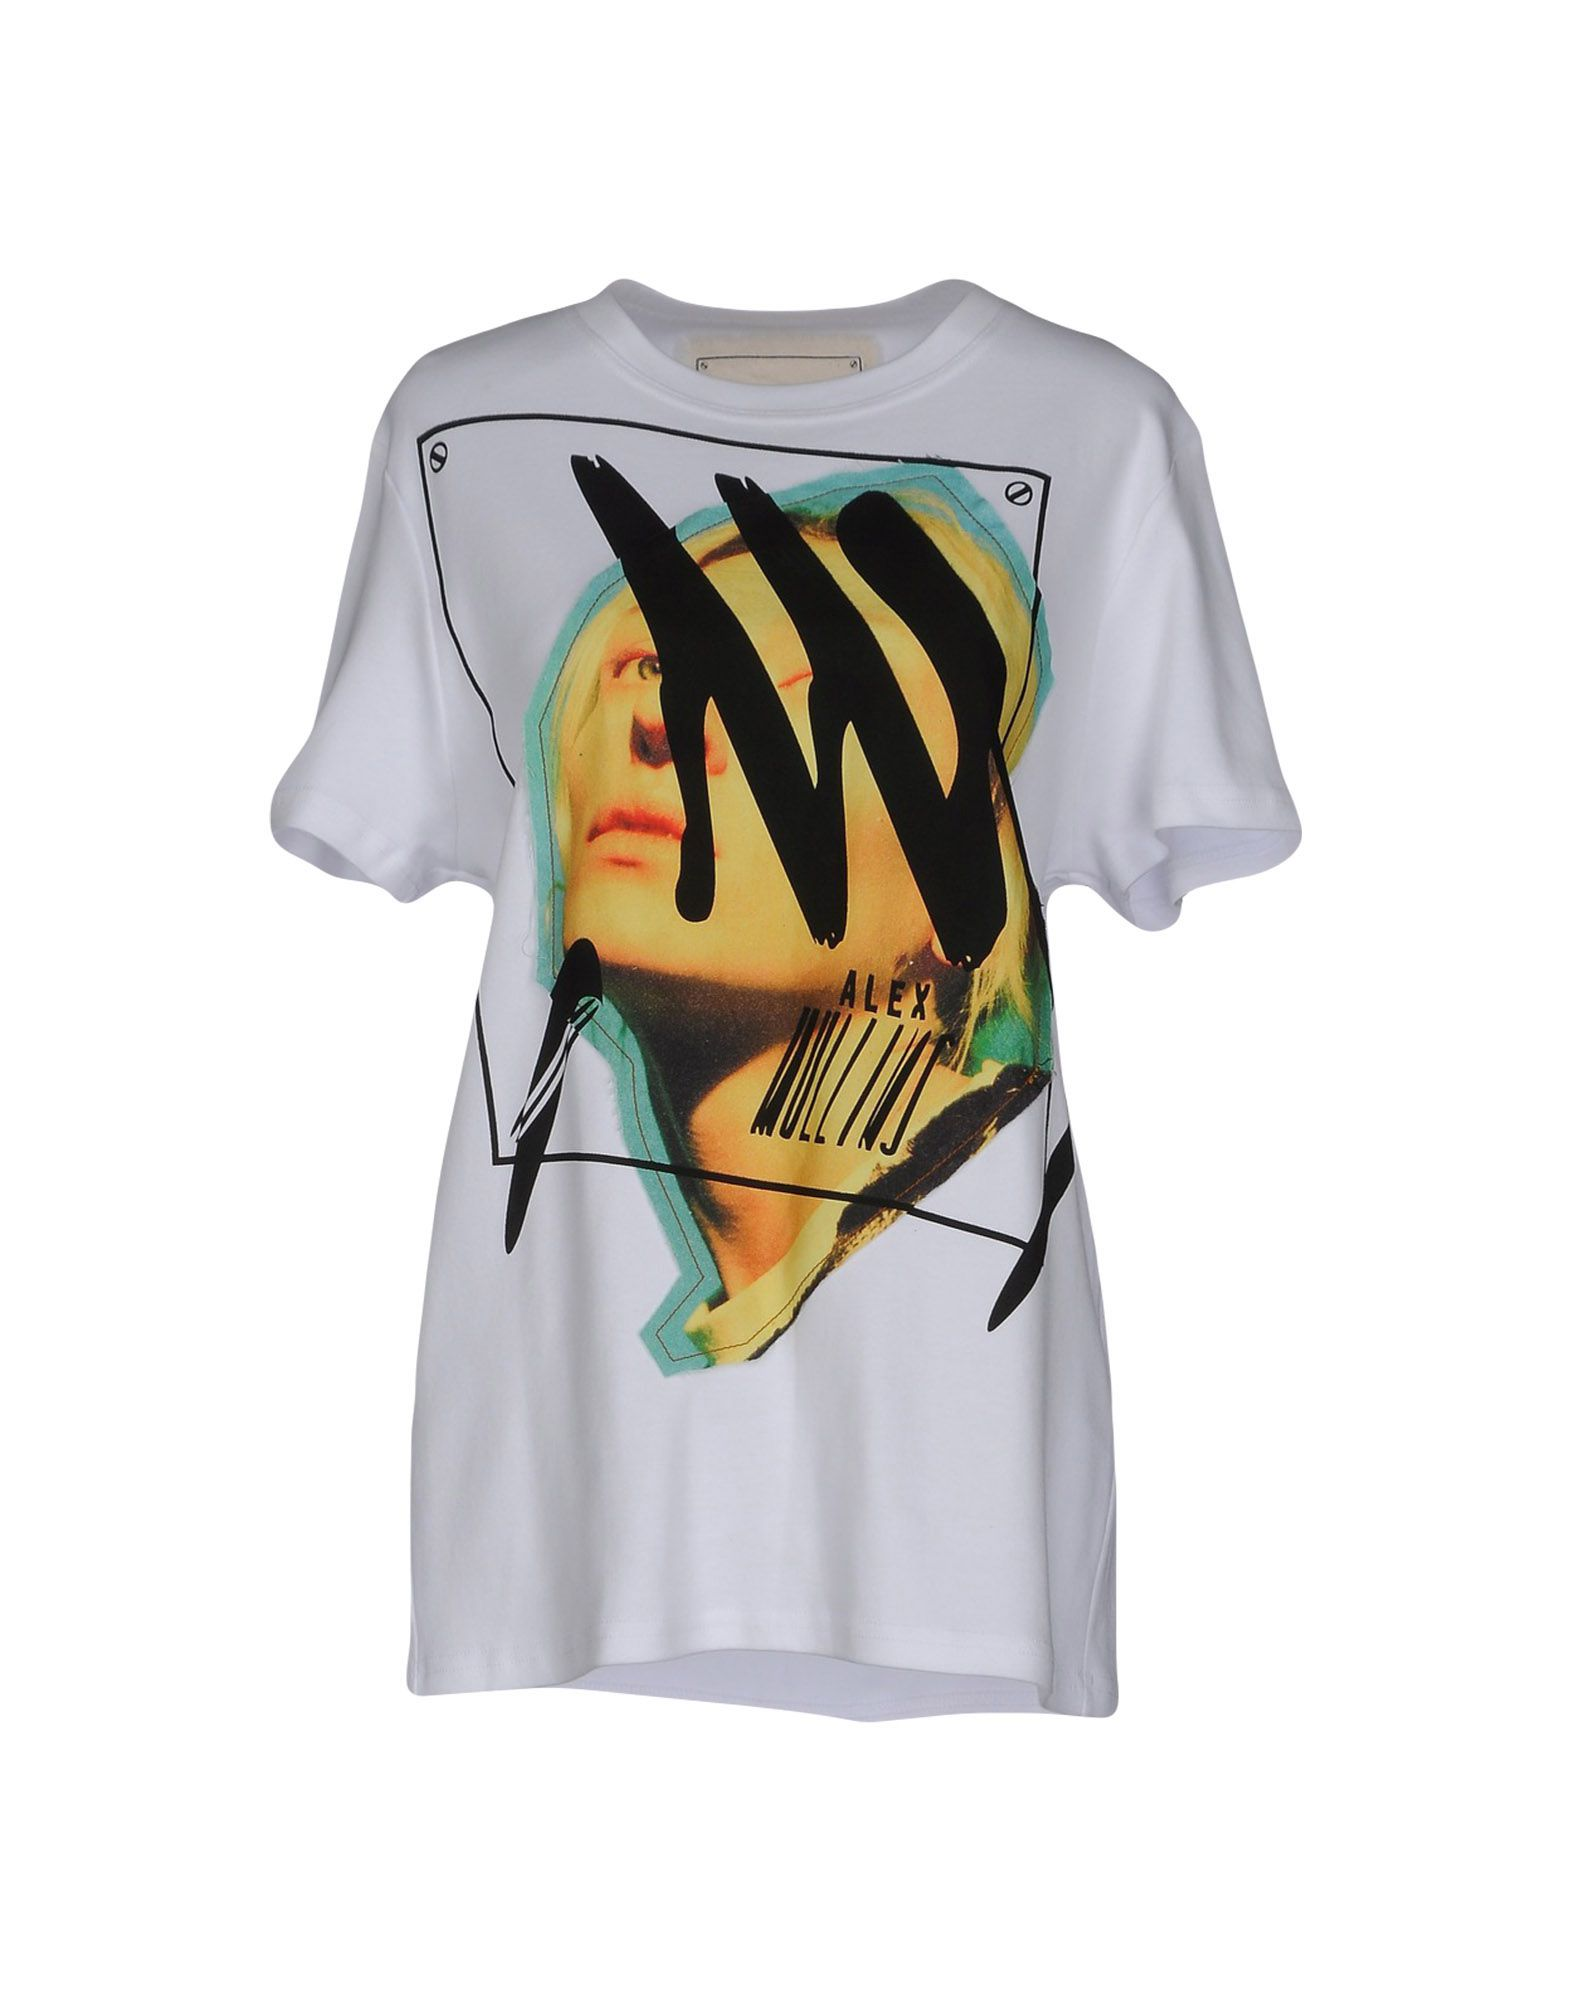 ALEX MULLINS T-Shirt in White